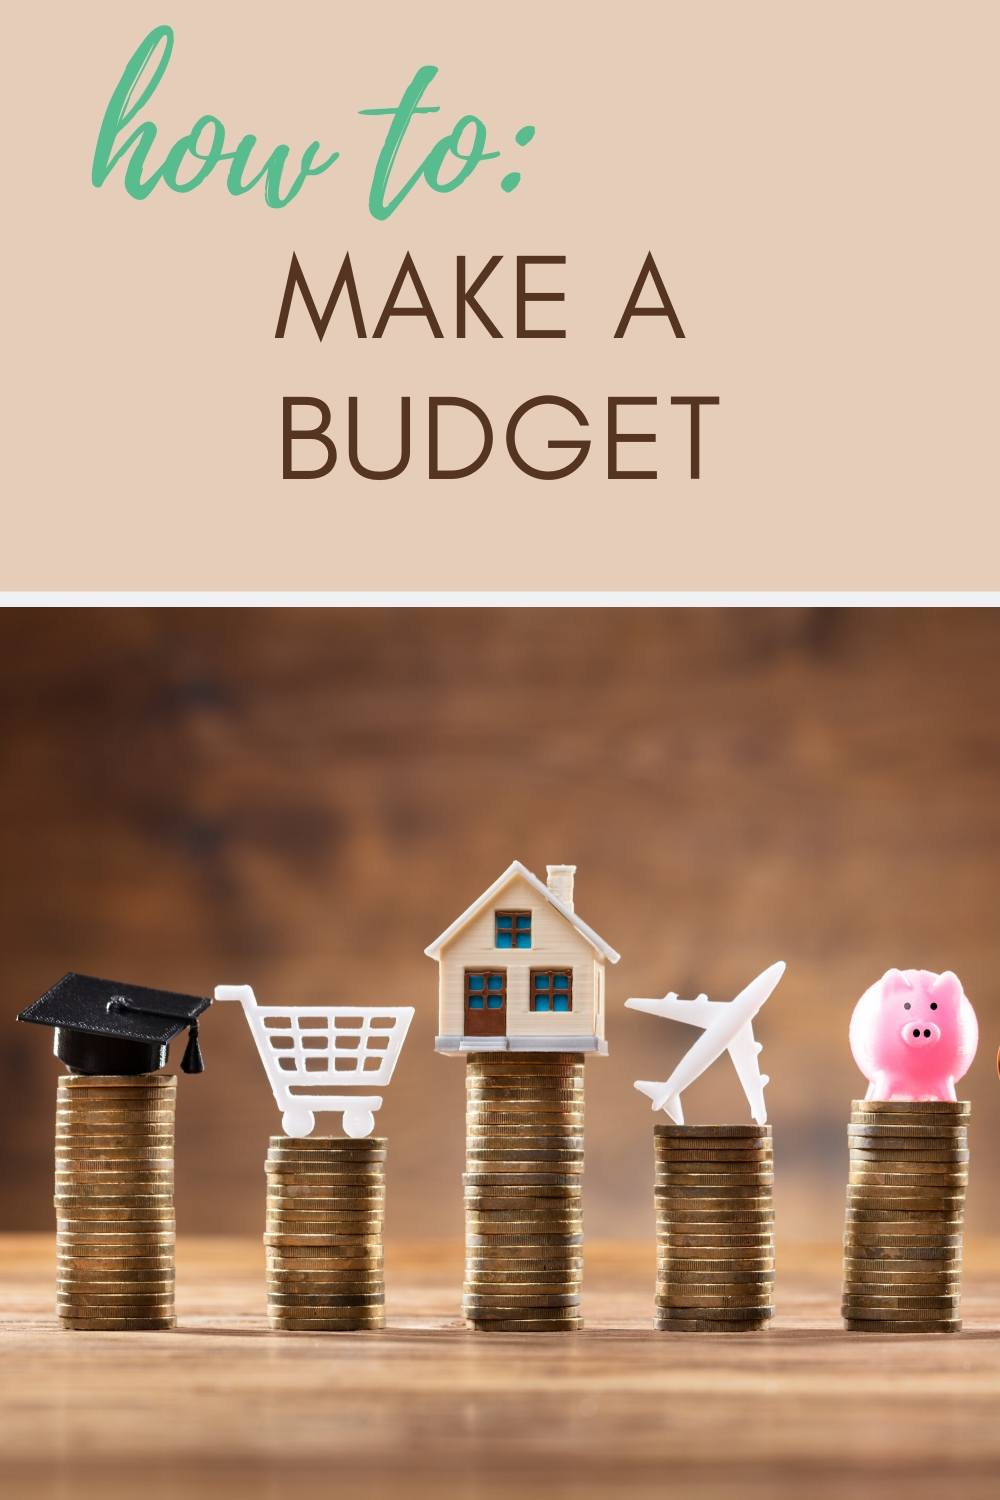 Odds are that life is going to get a bit tight (if it hasn't already).  Now is the perfect time to get your finances under control and Make a Budget! 